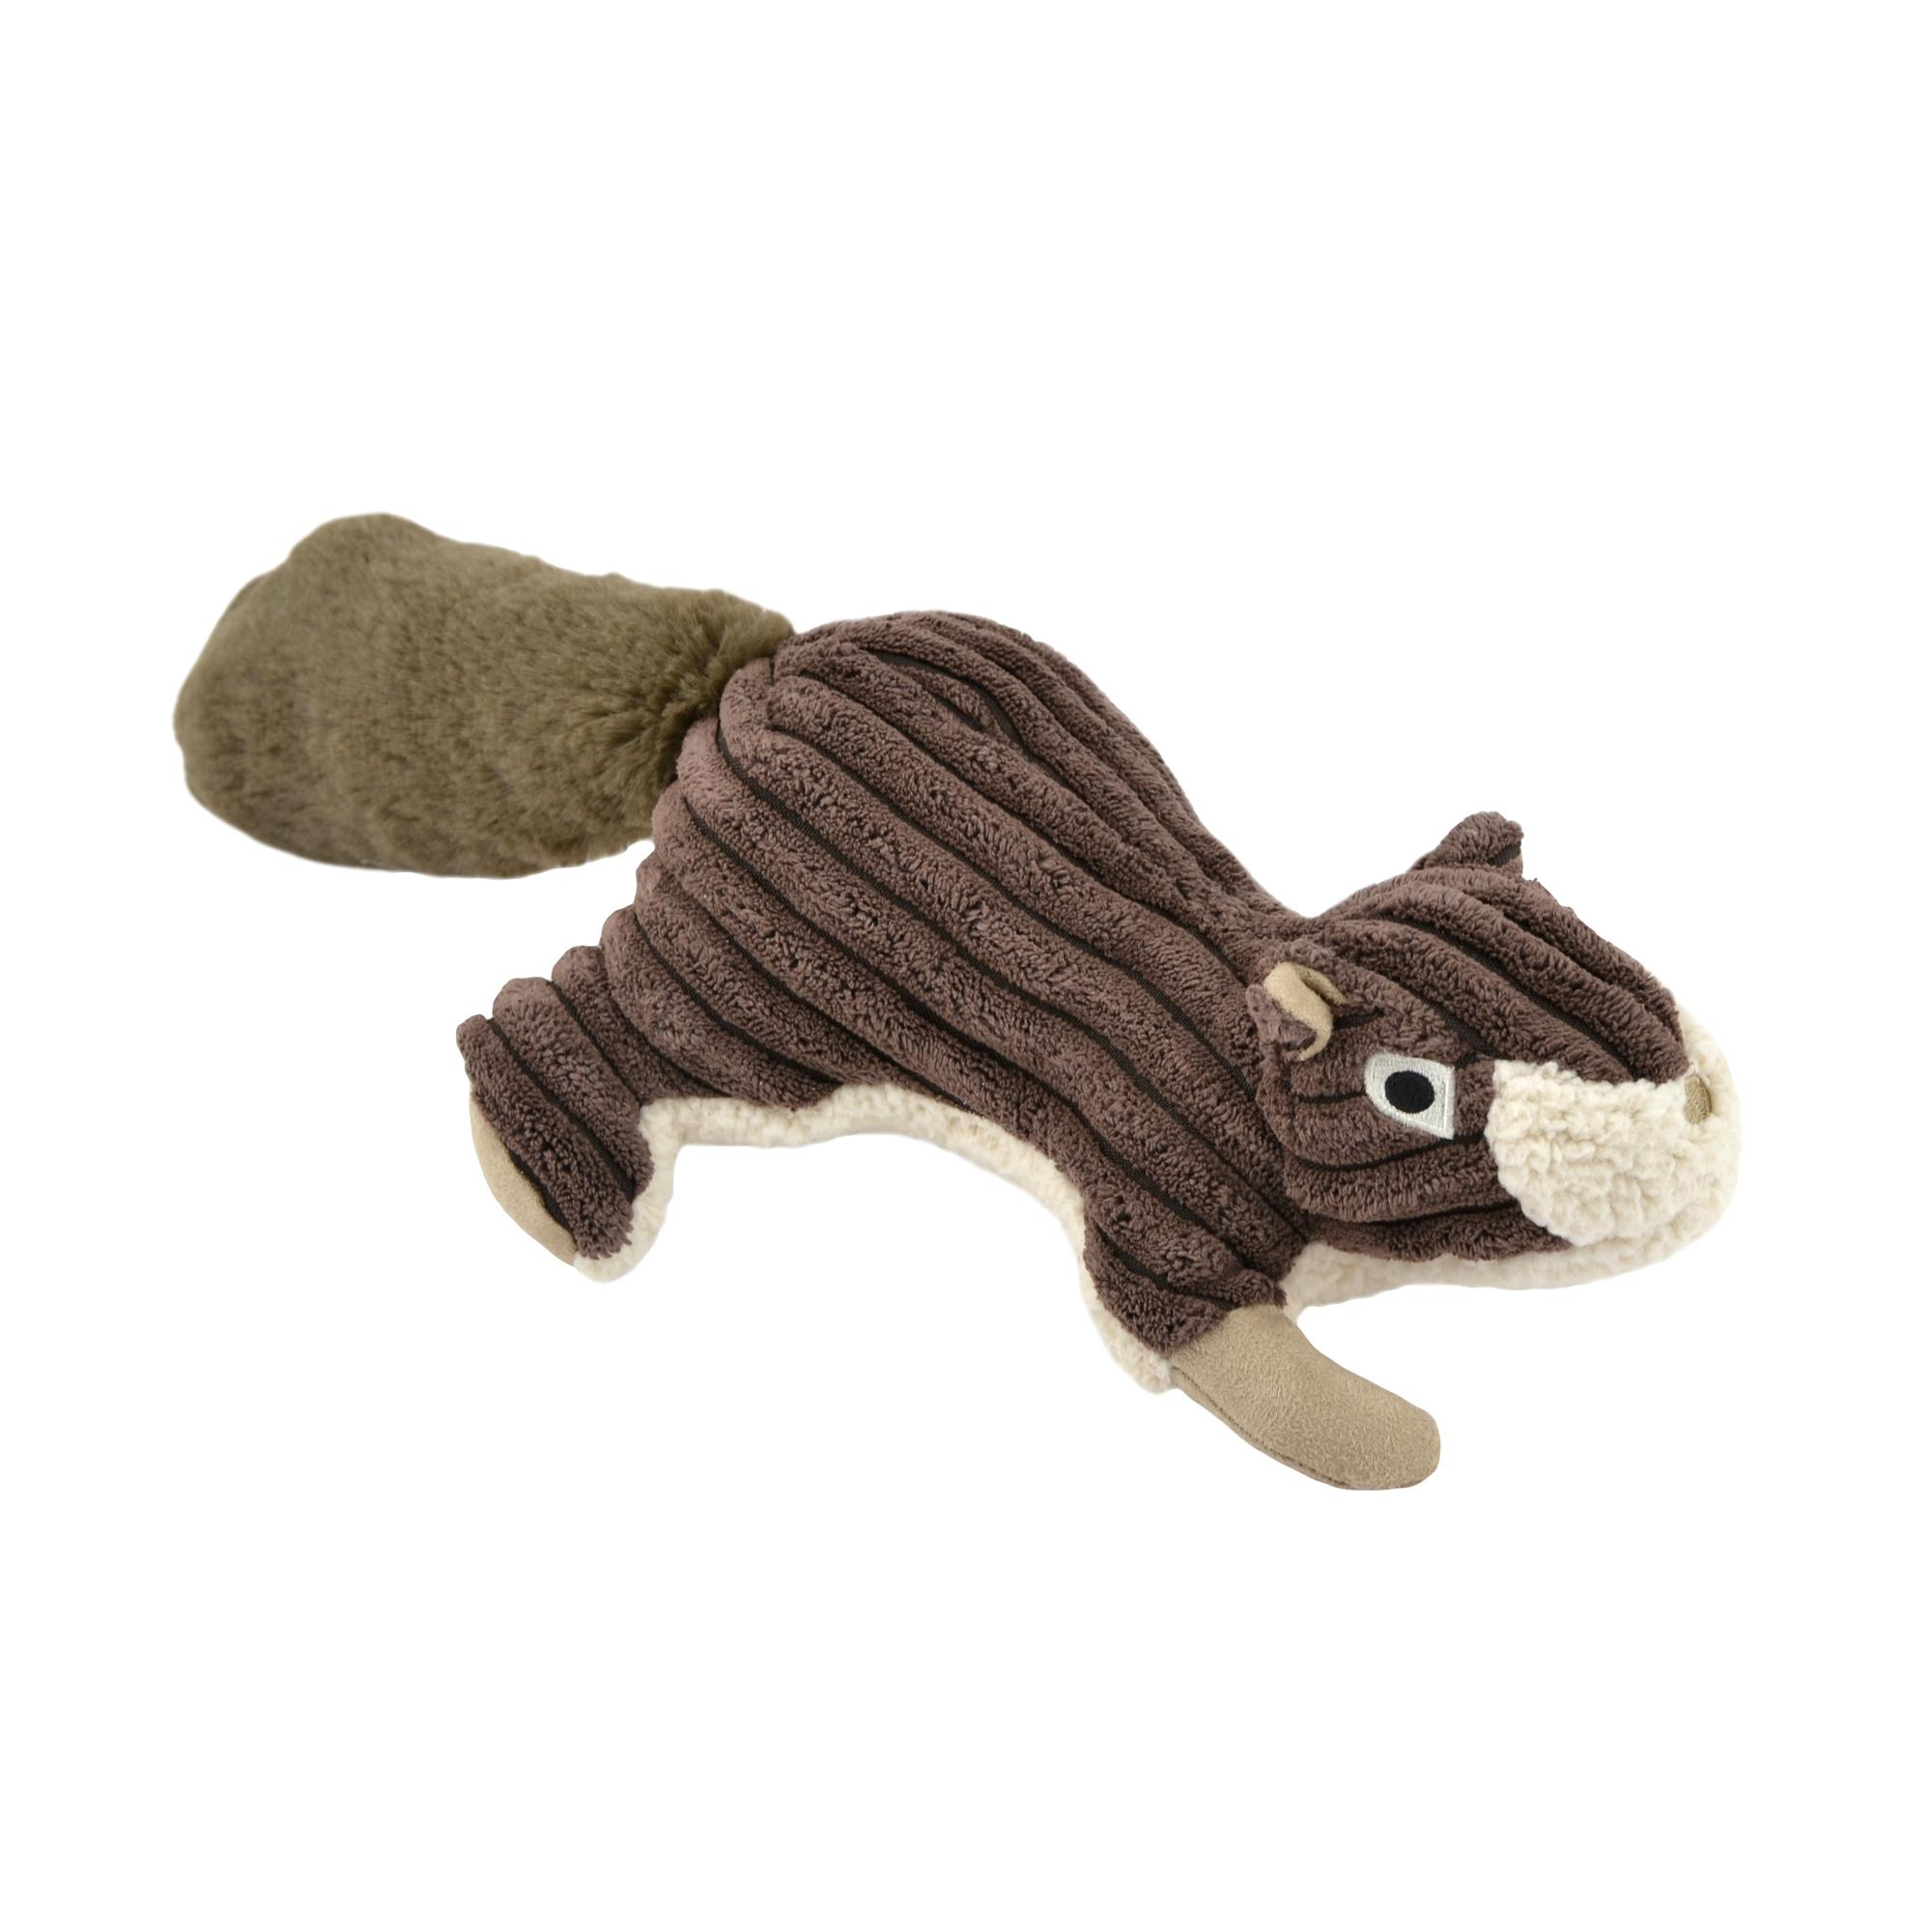 Tall Tails Squirrel Squeaker Dog Toy, 12-in